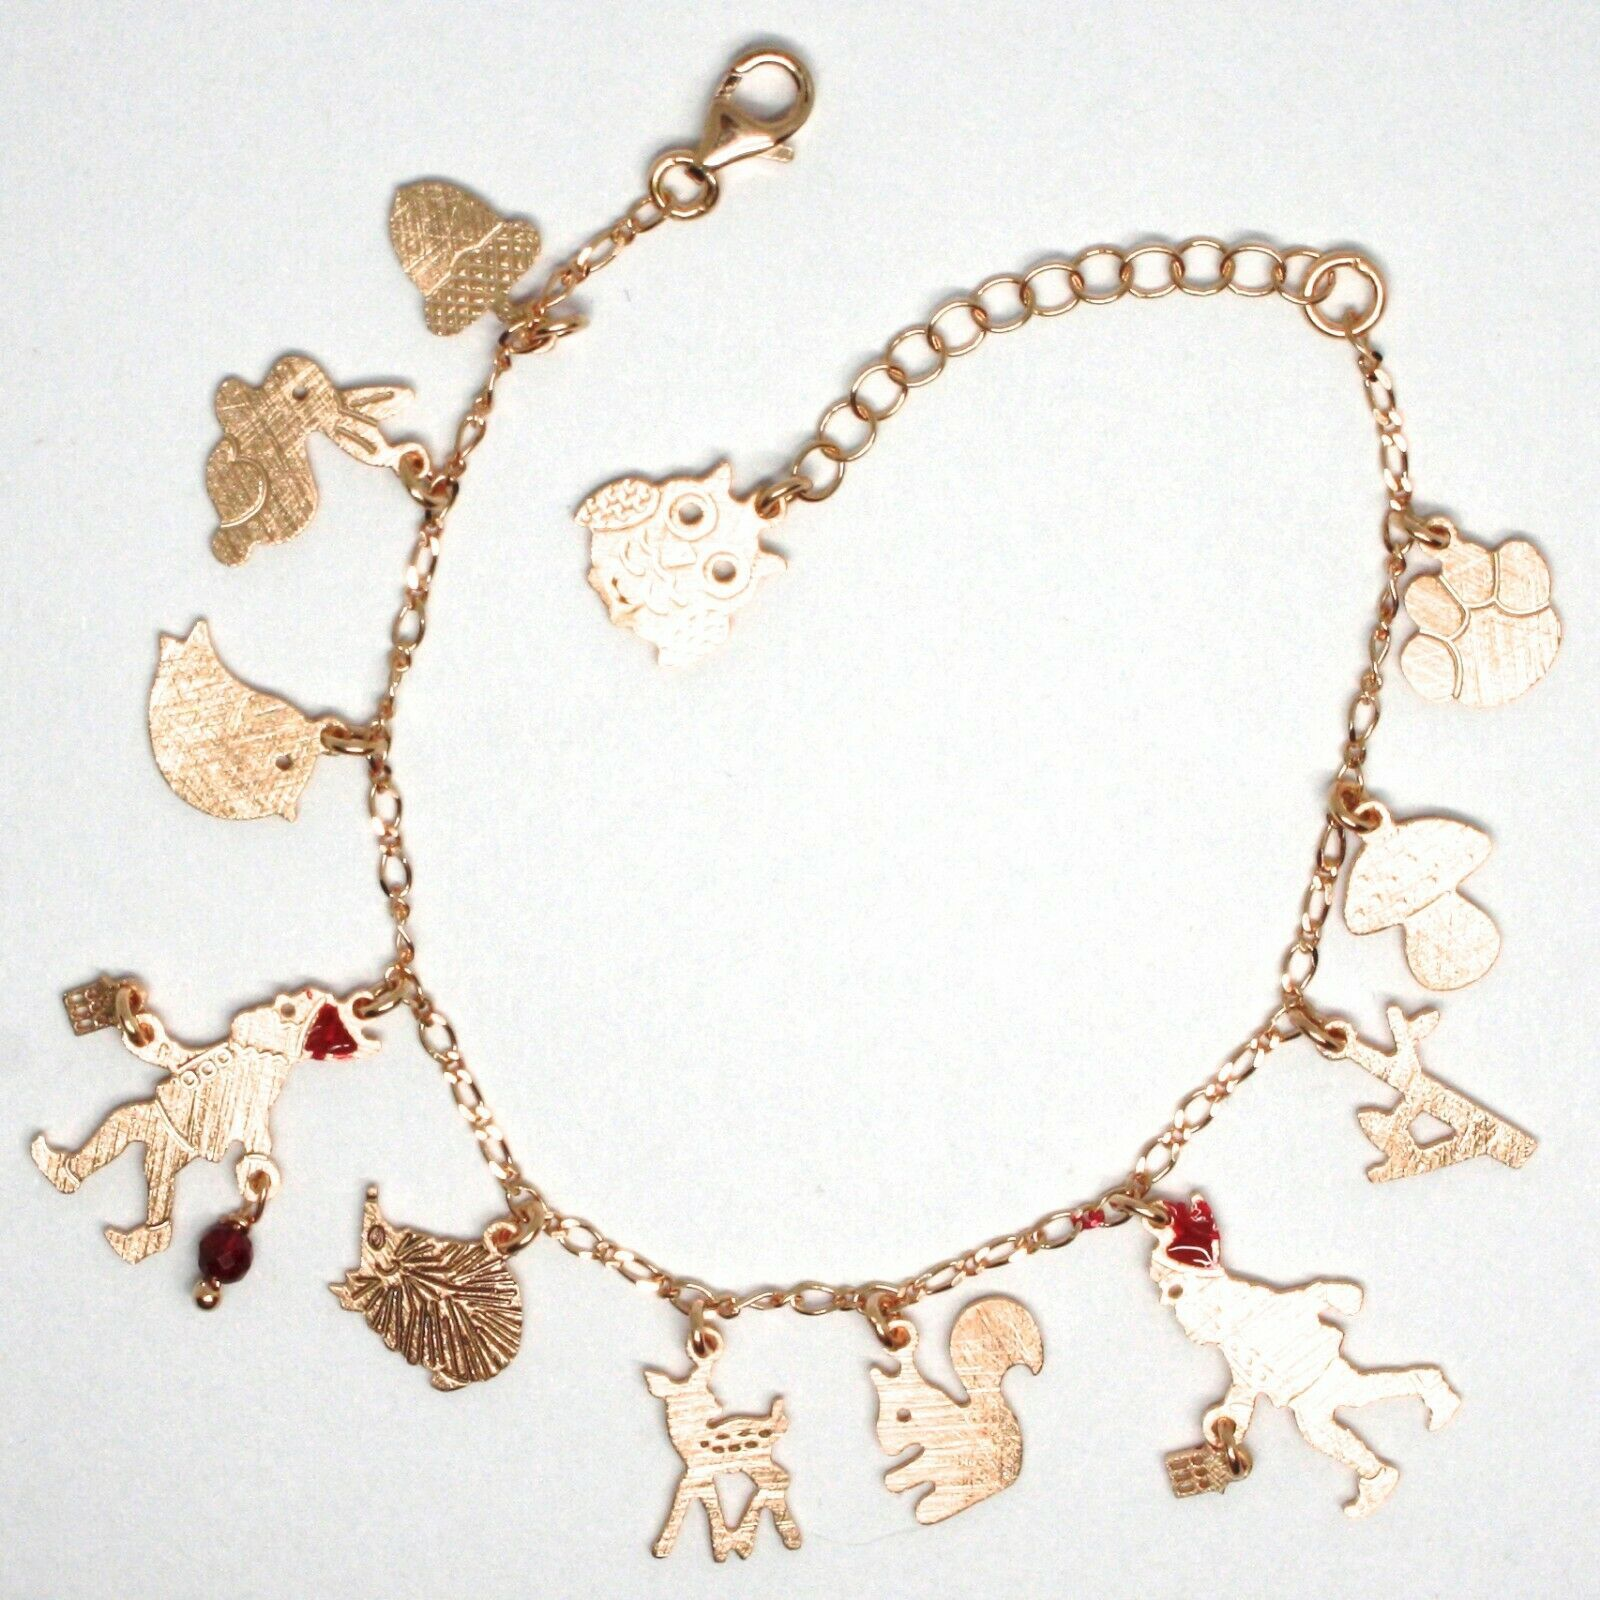 925 Silver Bracelet, Rabbit, Squirrel, Deer, Hedgehog, Owl, le Favole